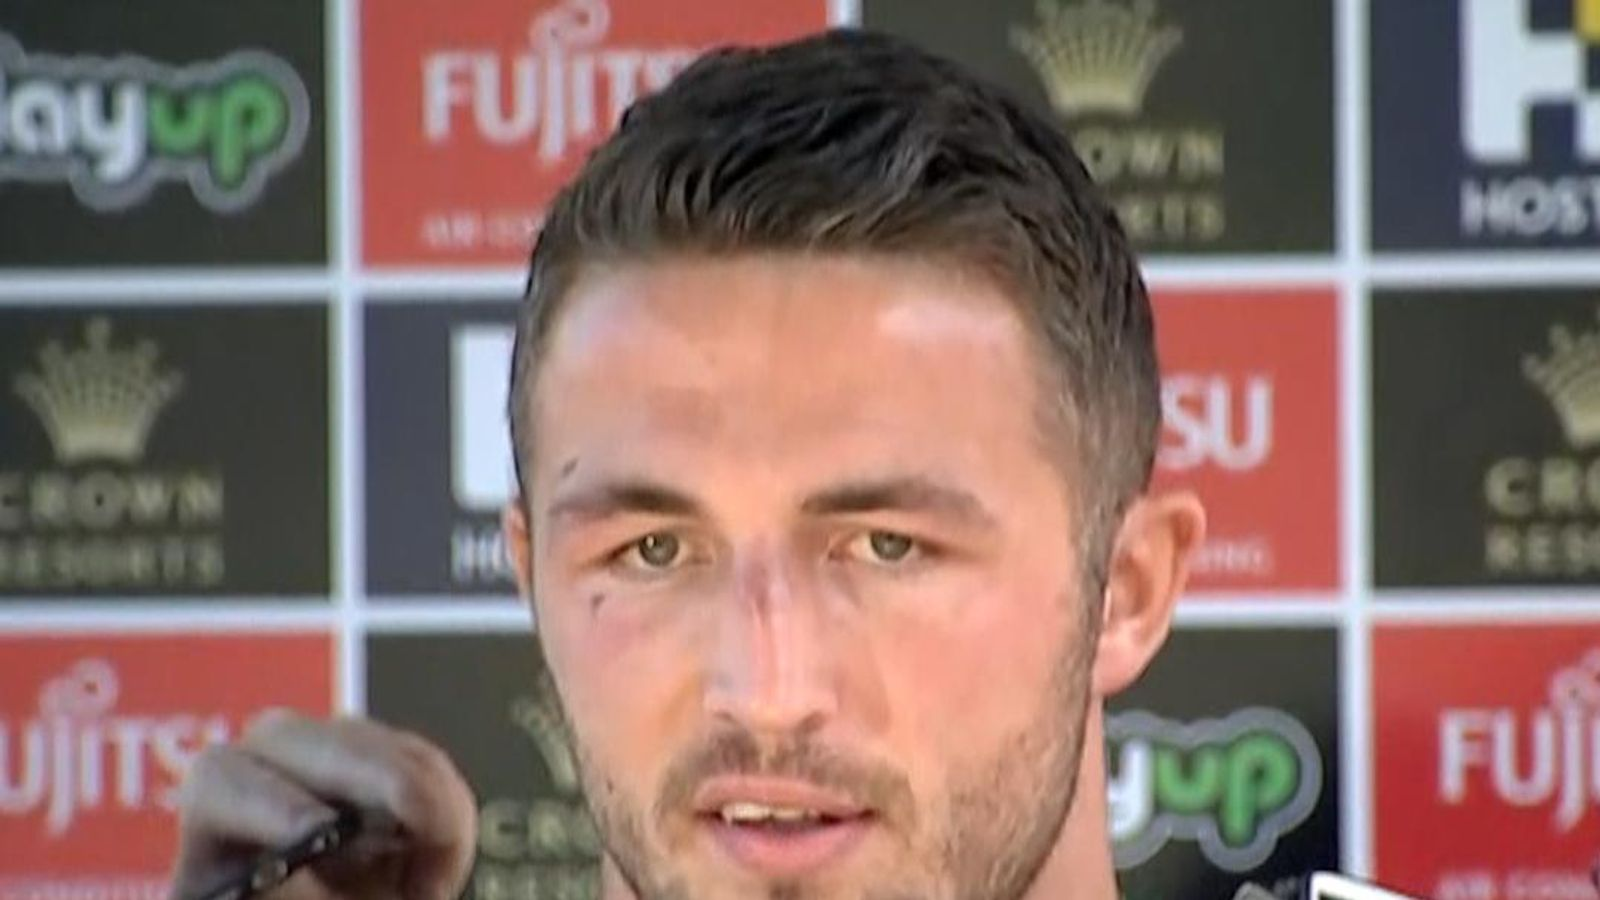 burgess chat Burgess is regarded as one of the elite rugby league players in the world and was hailed a club legend after playing a leading hand in the rabbitohs' premiership triumph in 2014.